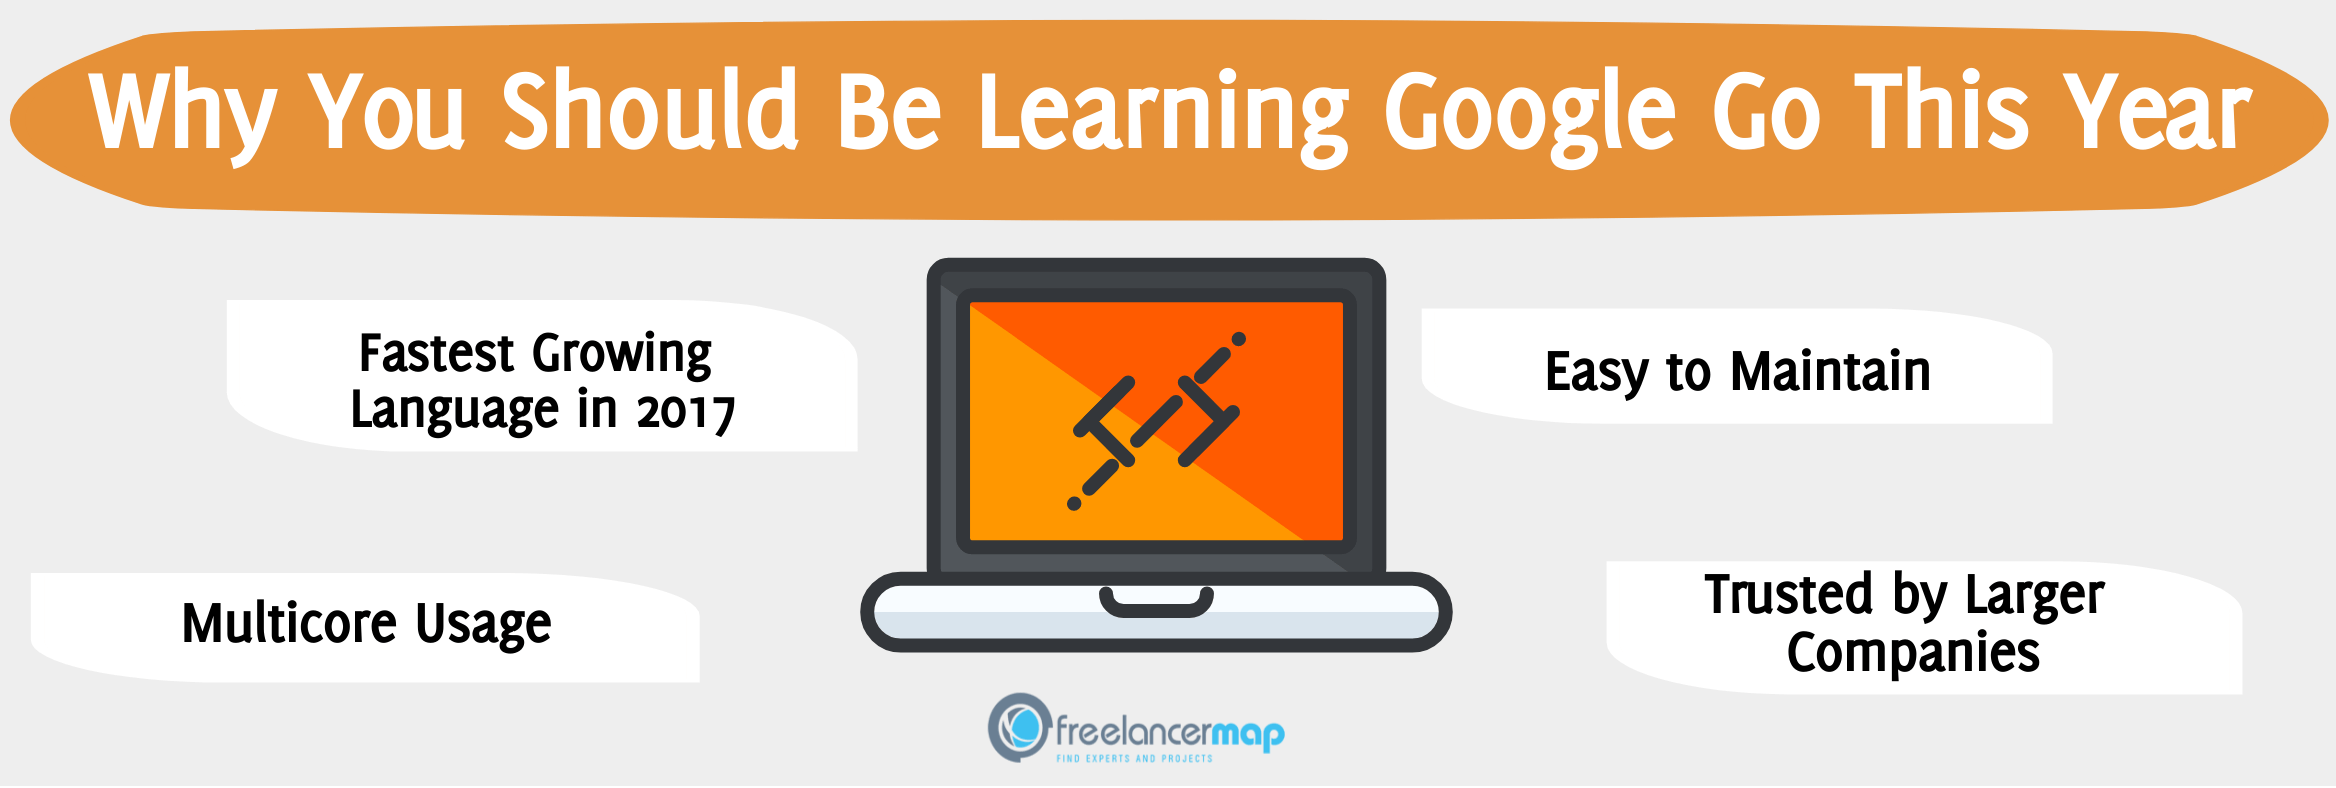 Why should you learn Google Go